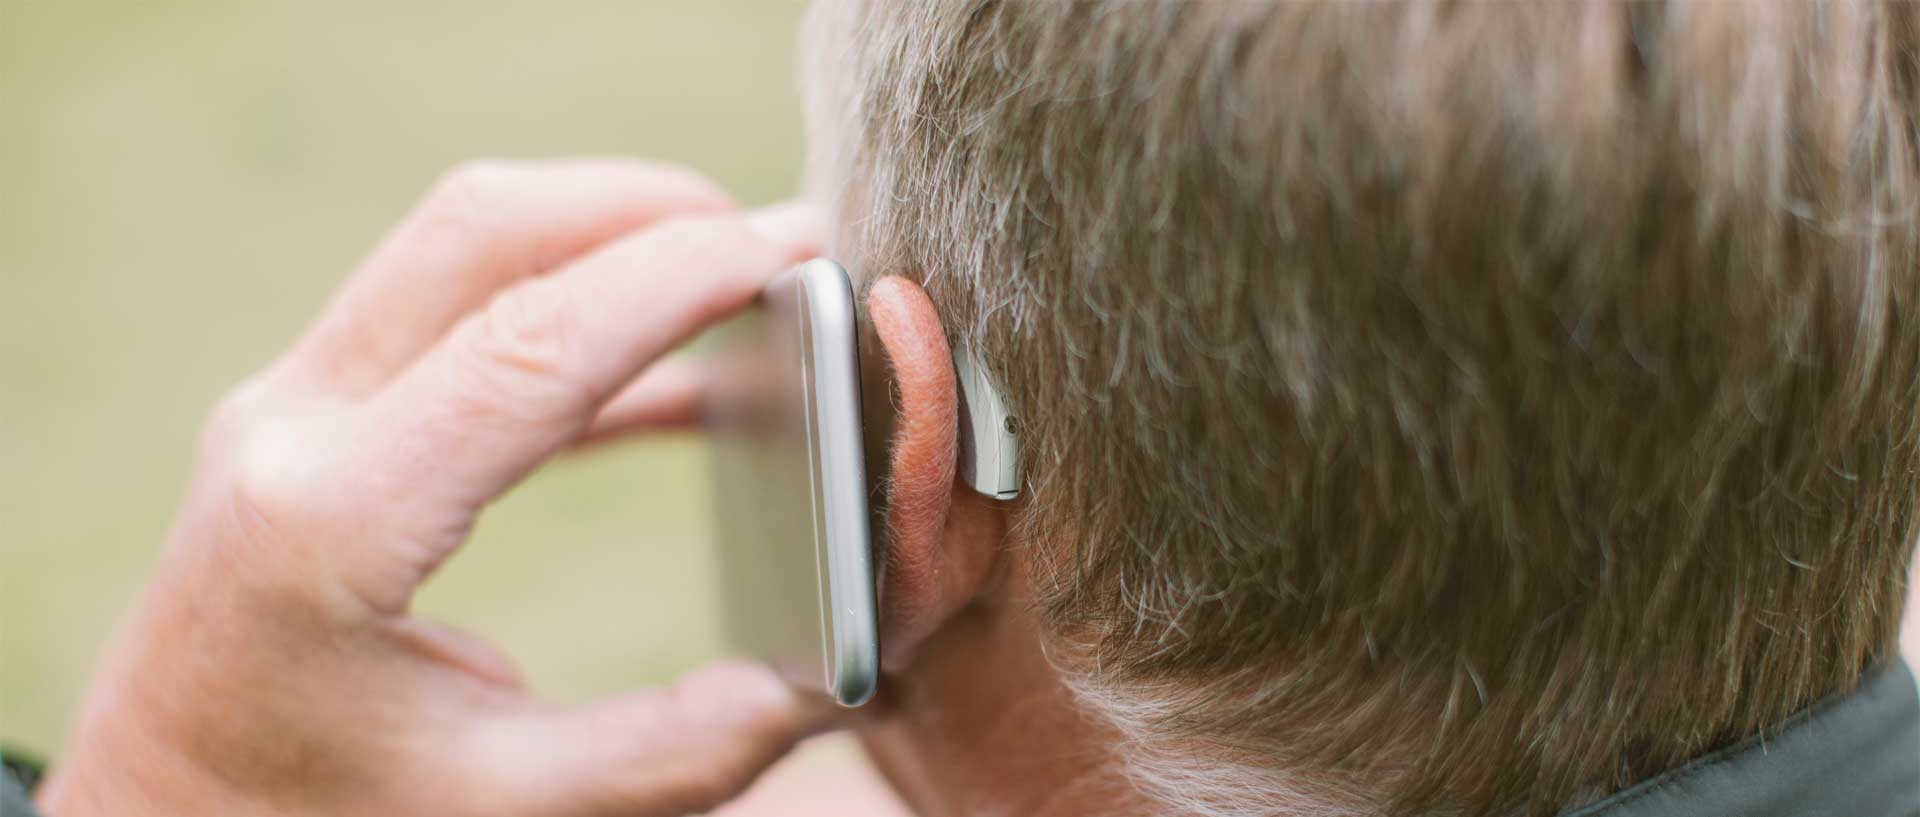 How To Beat High Hearing Aid Prices Consumer Reports